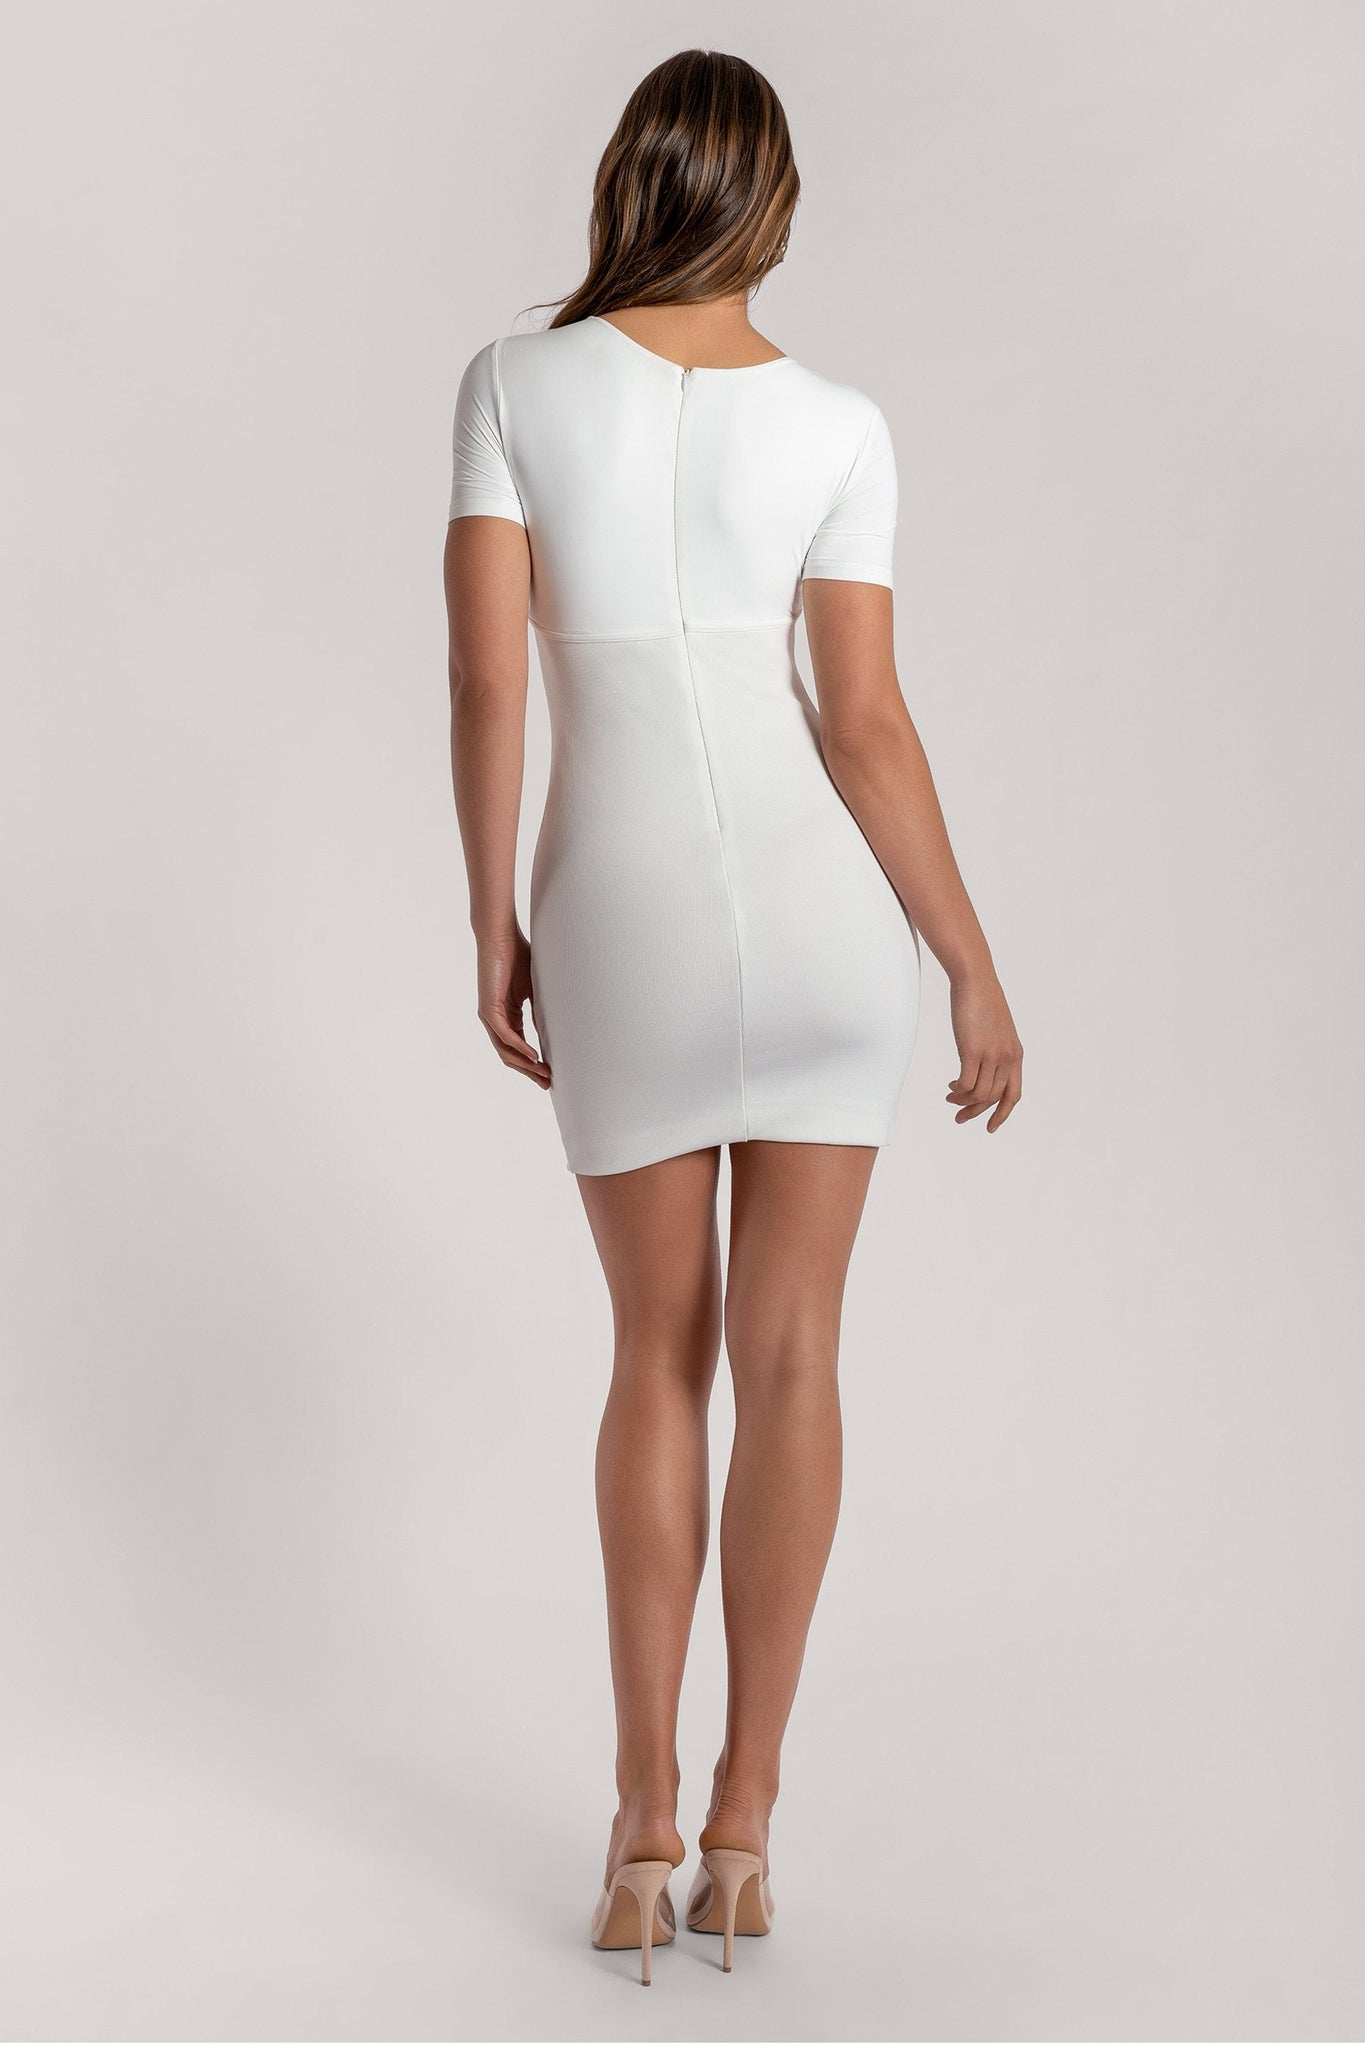 Kenzie Corsetted Waist Short Sleeve Mini Dress - White - MESHKI